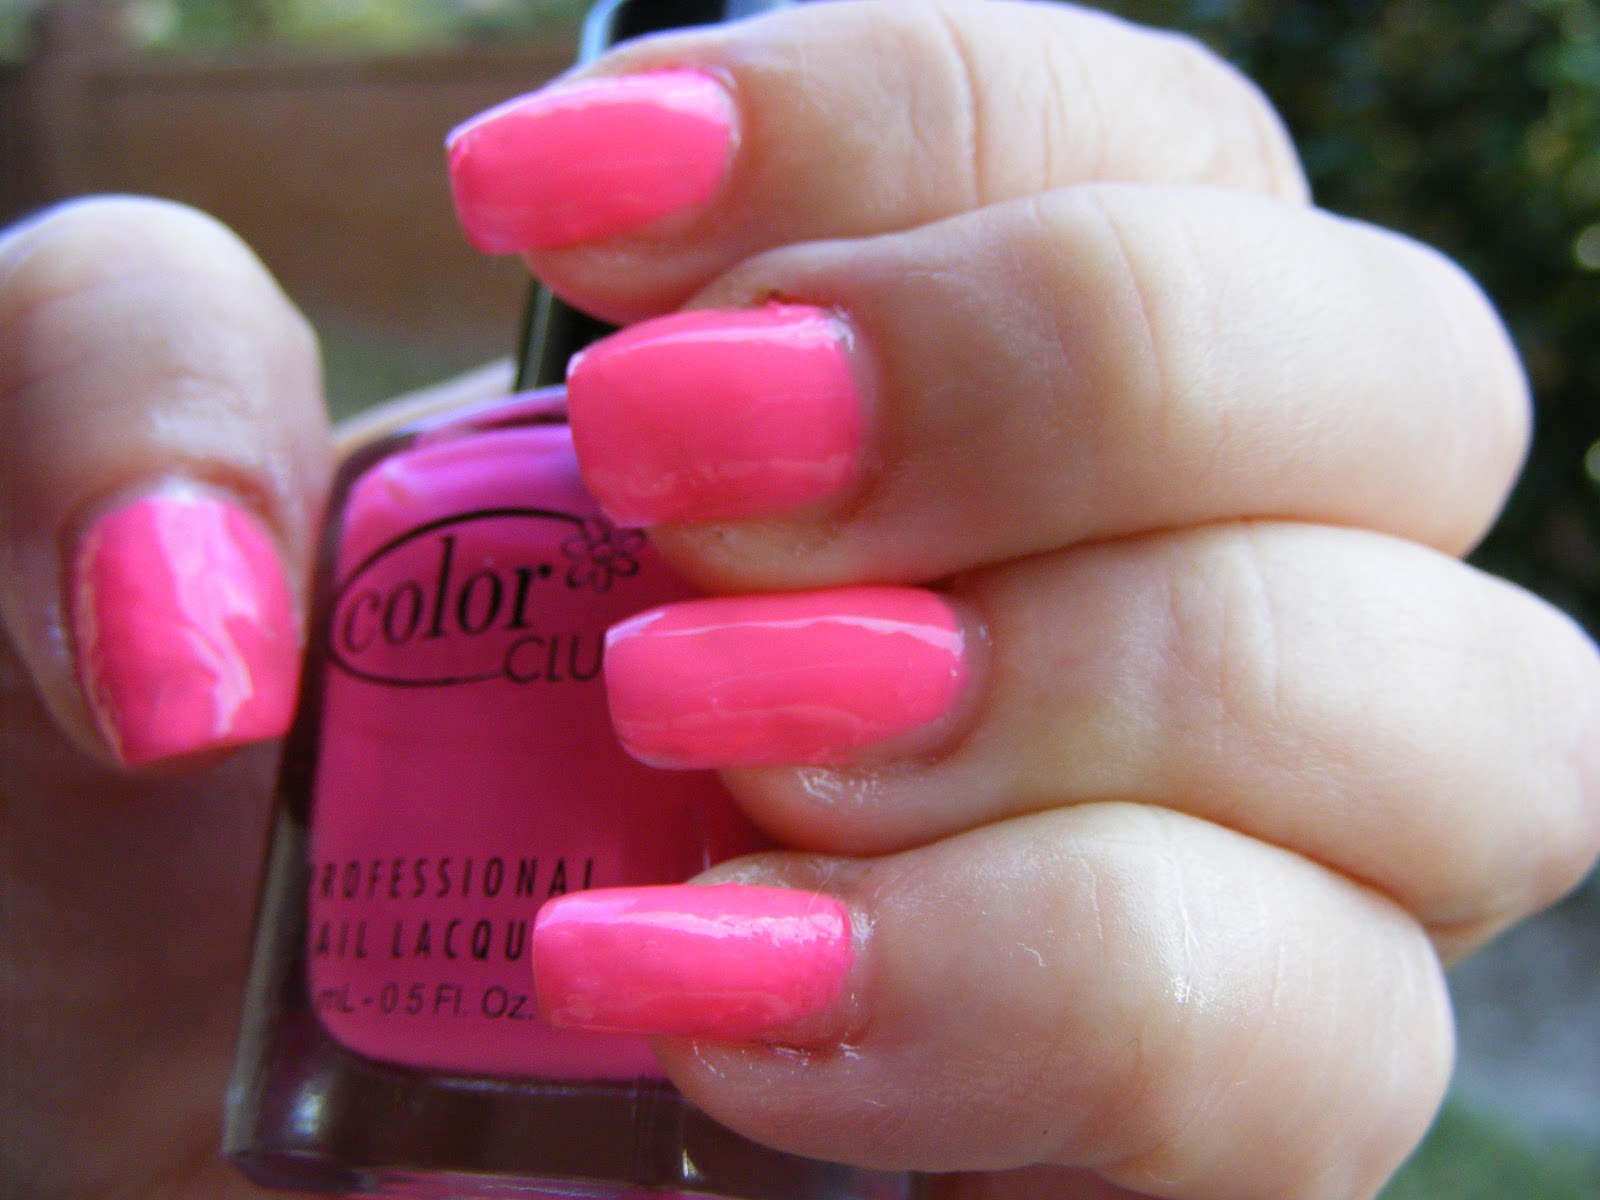 http://2.bp.blogspot.com/-HElfILH-Oz8/T0gfov3ICYI/AAAAAAAAH7U/phOTaprgRb4/s1600/pink+NOTD+group+photo+005.JPG